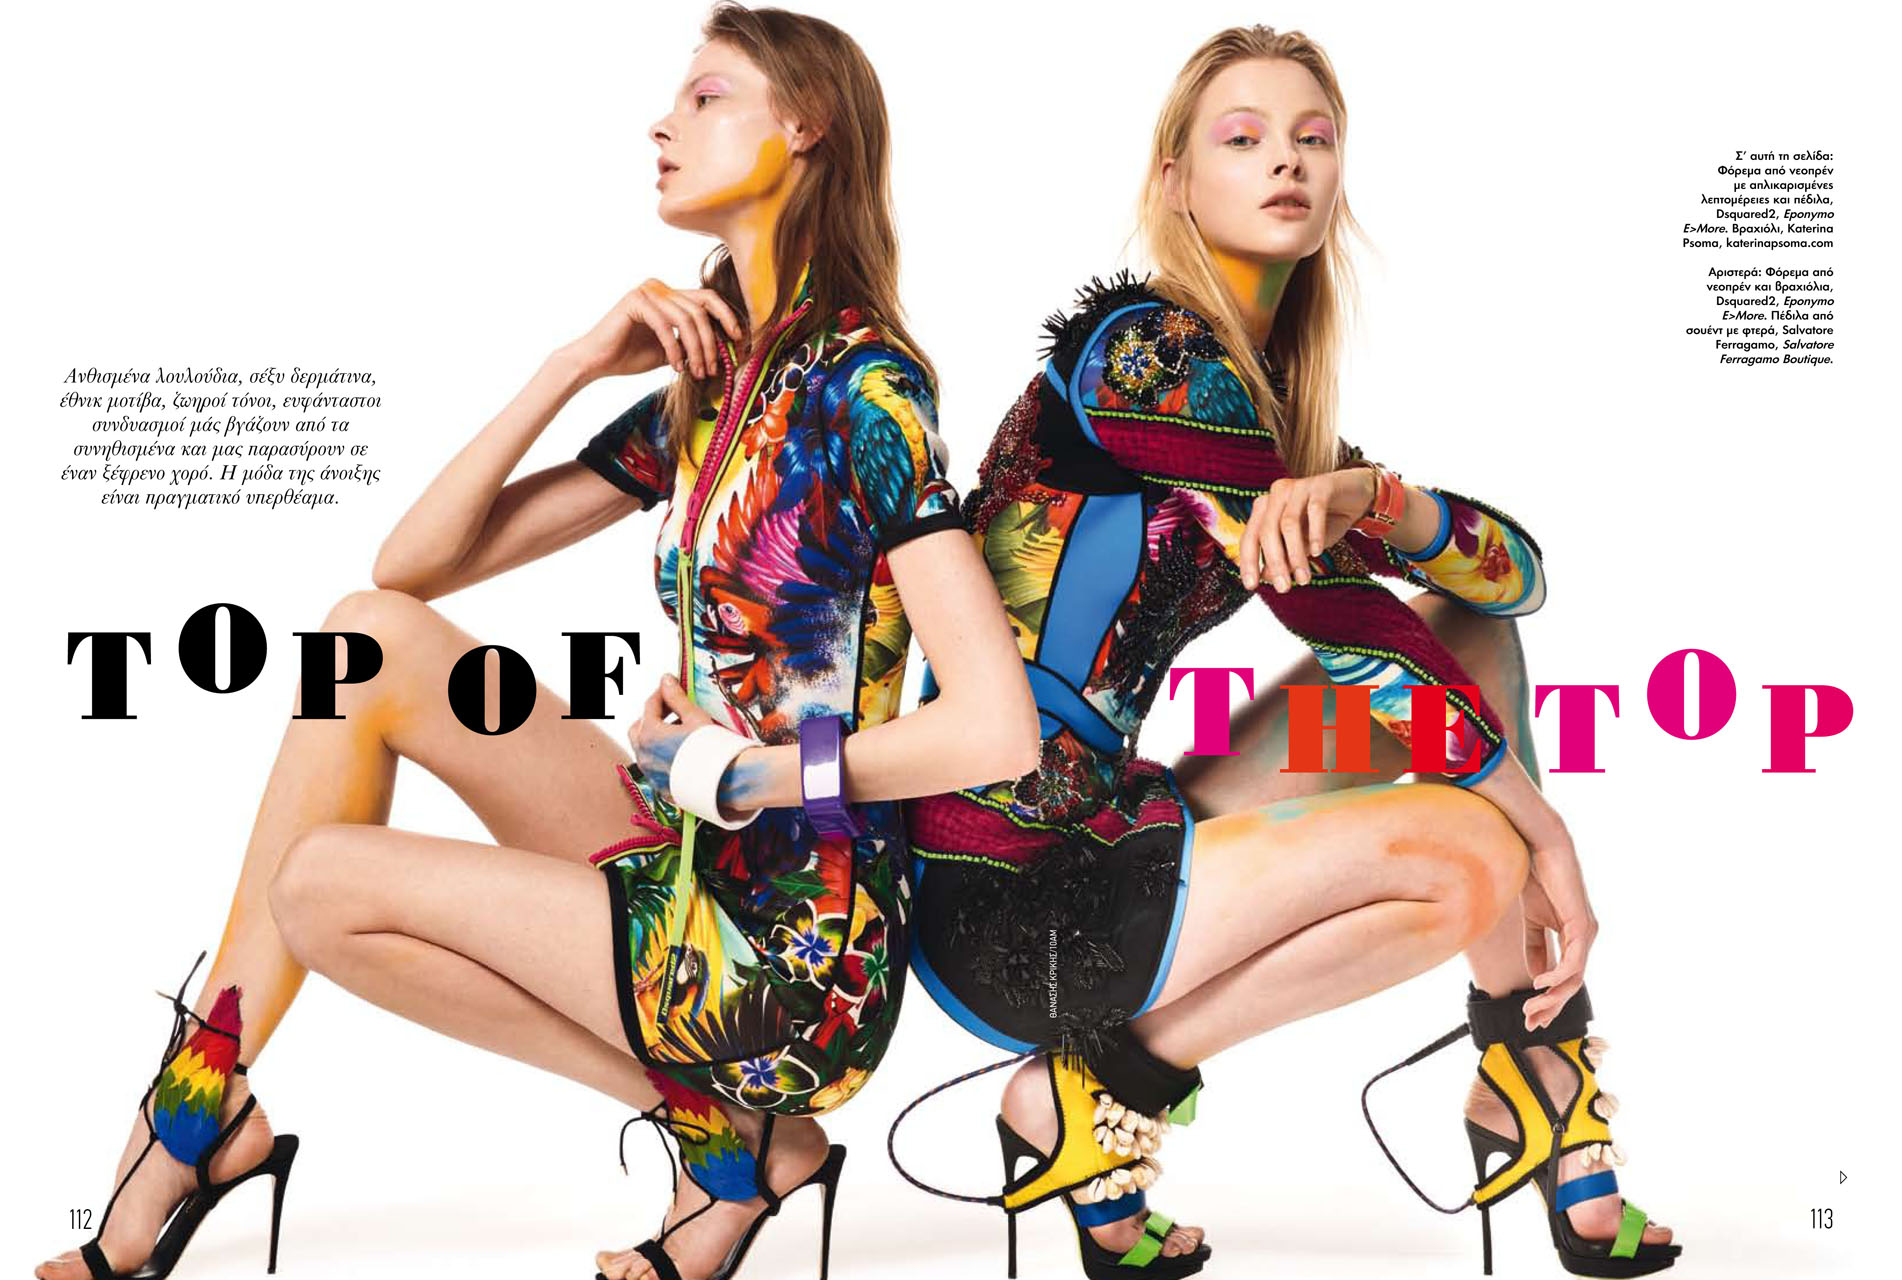 Romy de Vries  & Vita Silkaityte are top of the top for Elle.